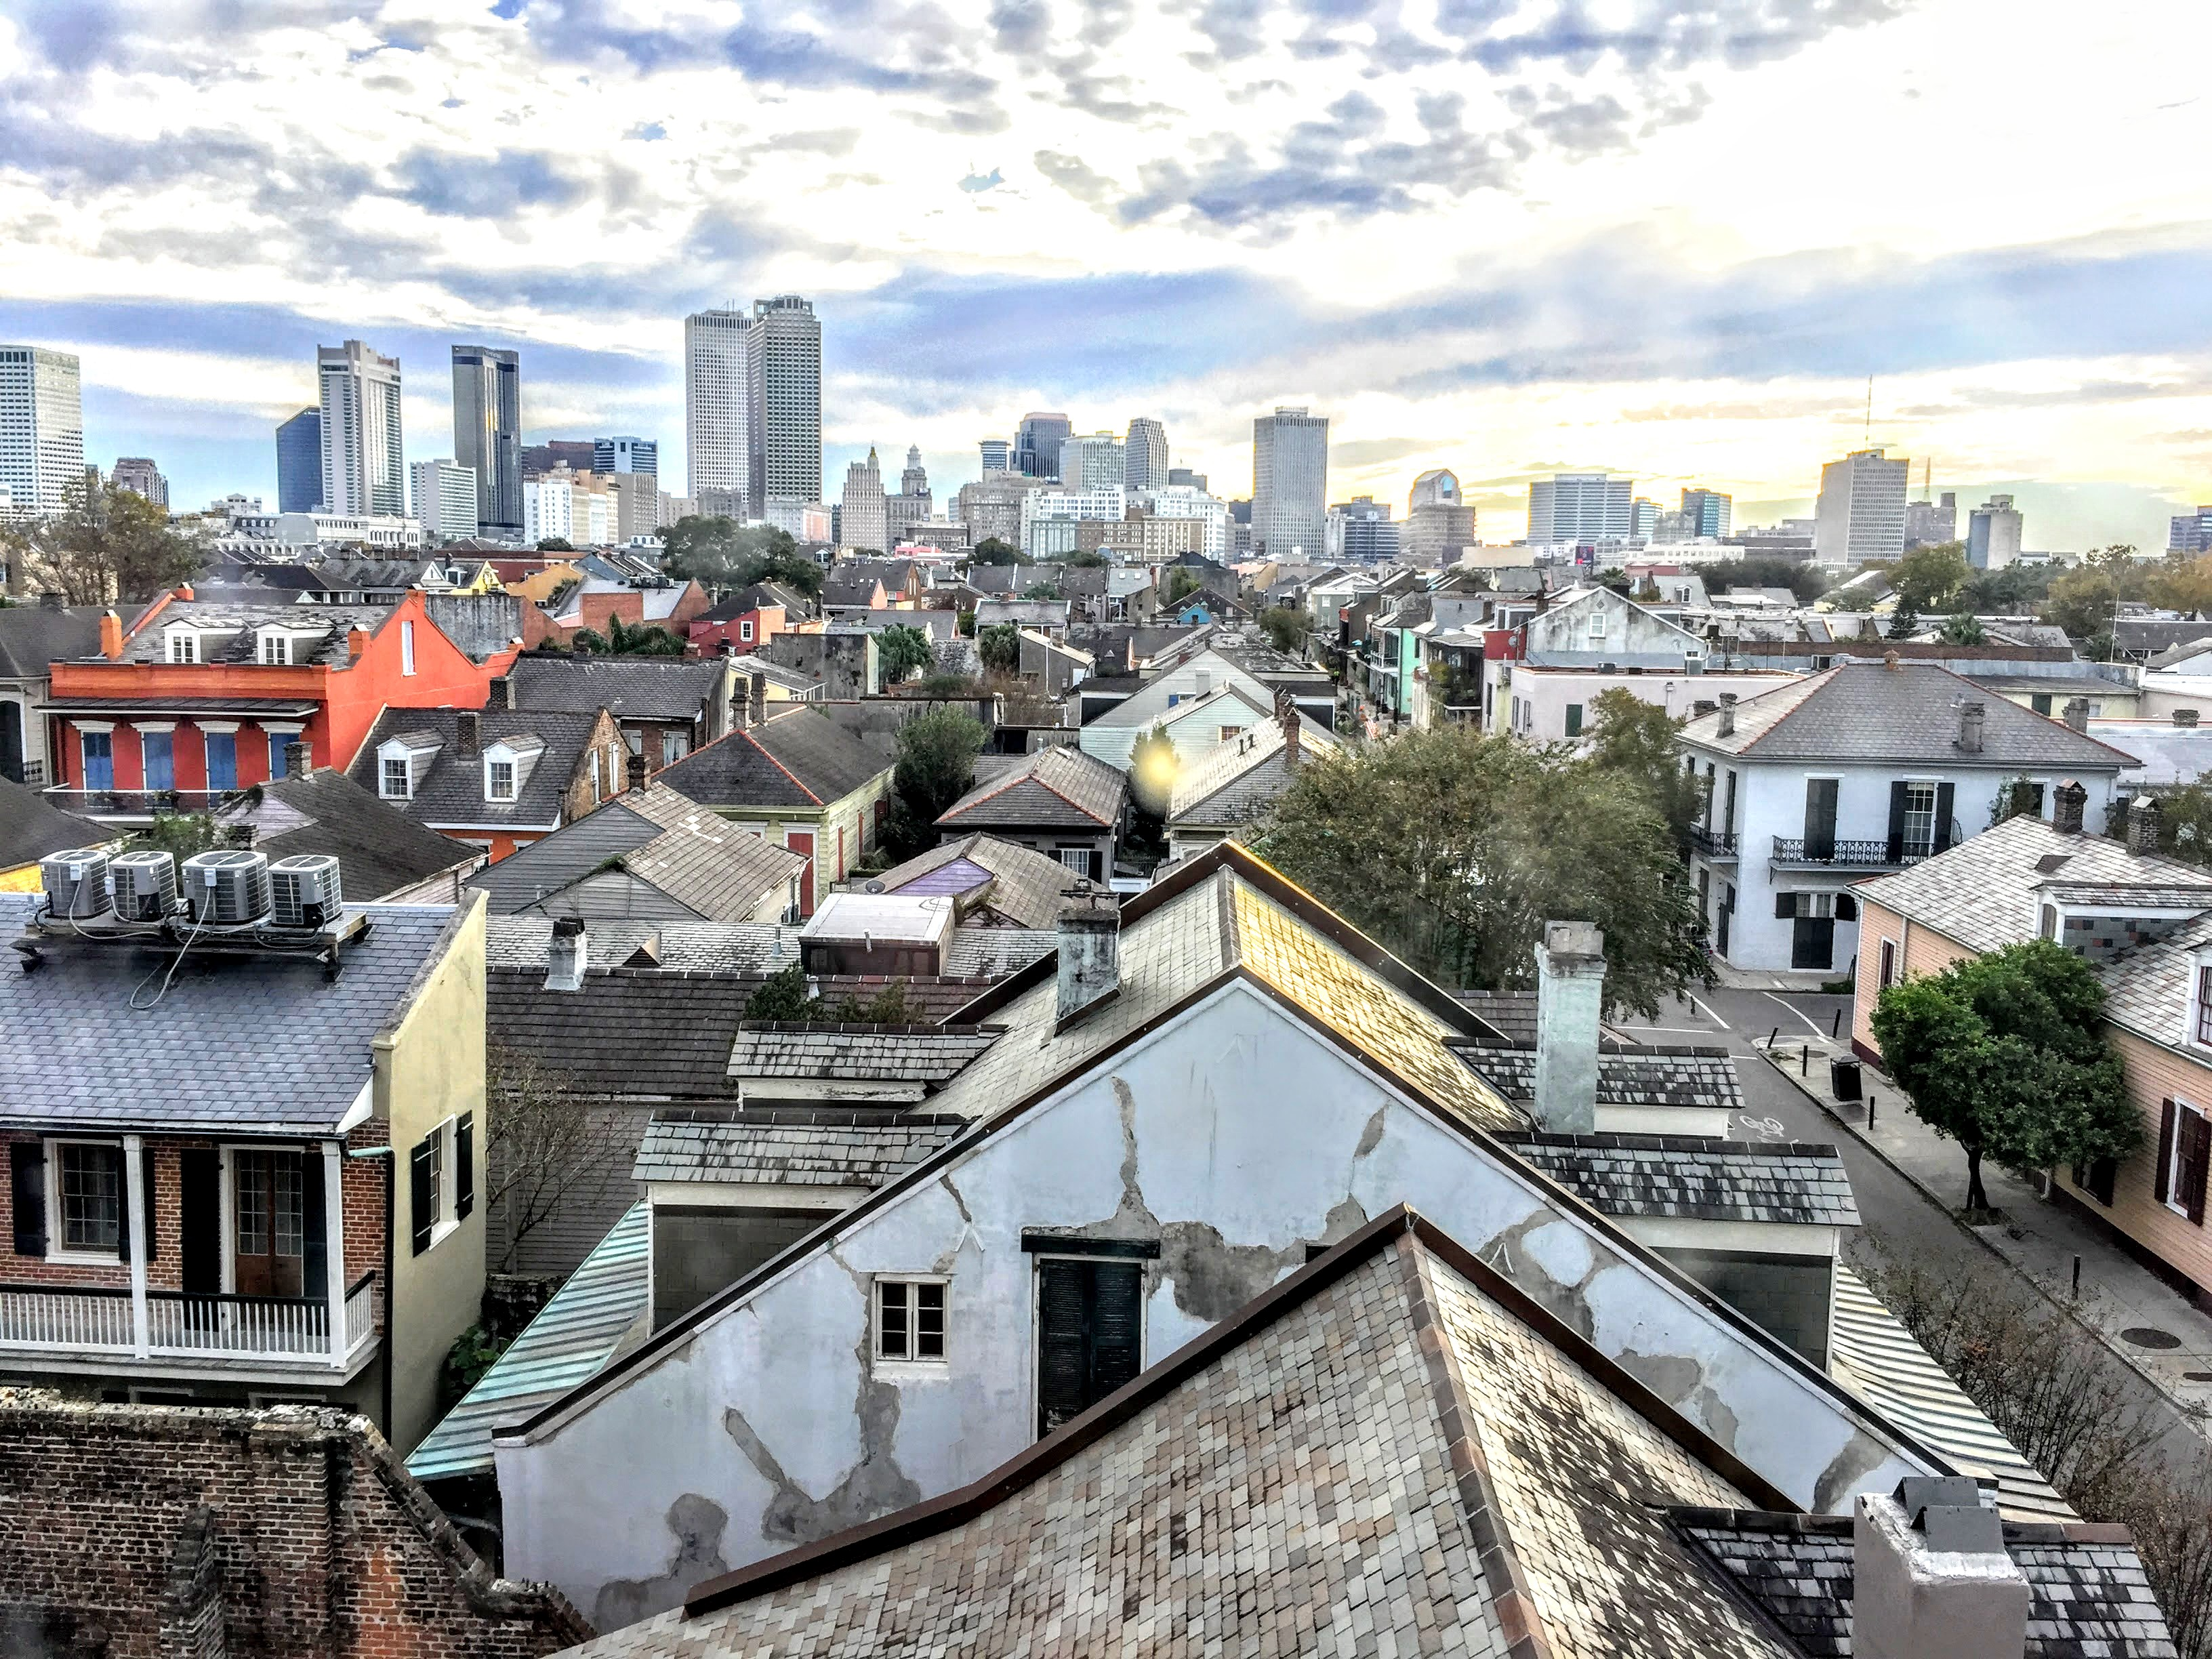 roofs_of_new_orleans_french_quarter.jpg